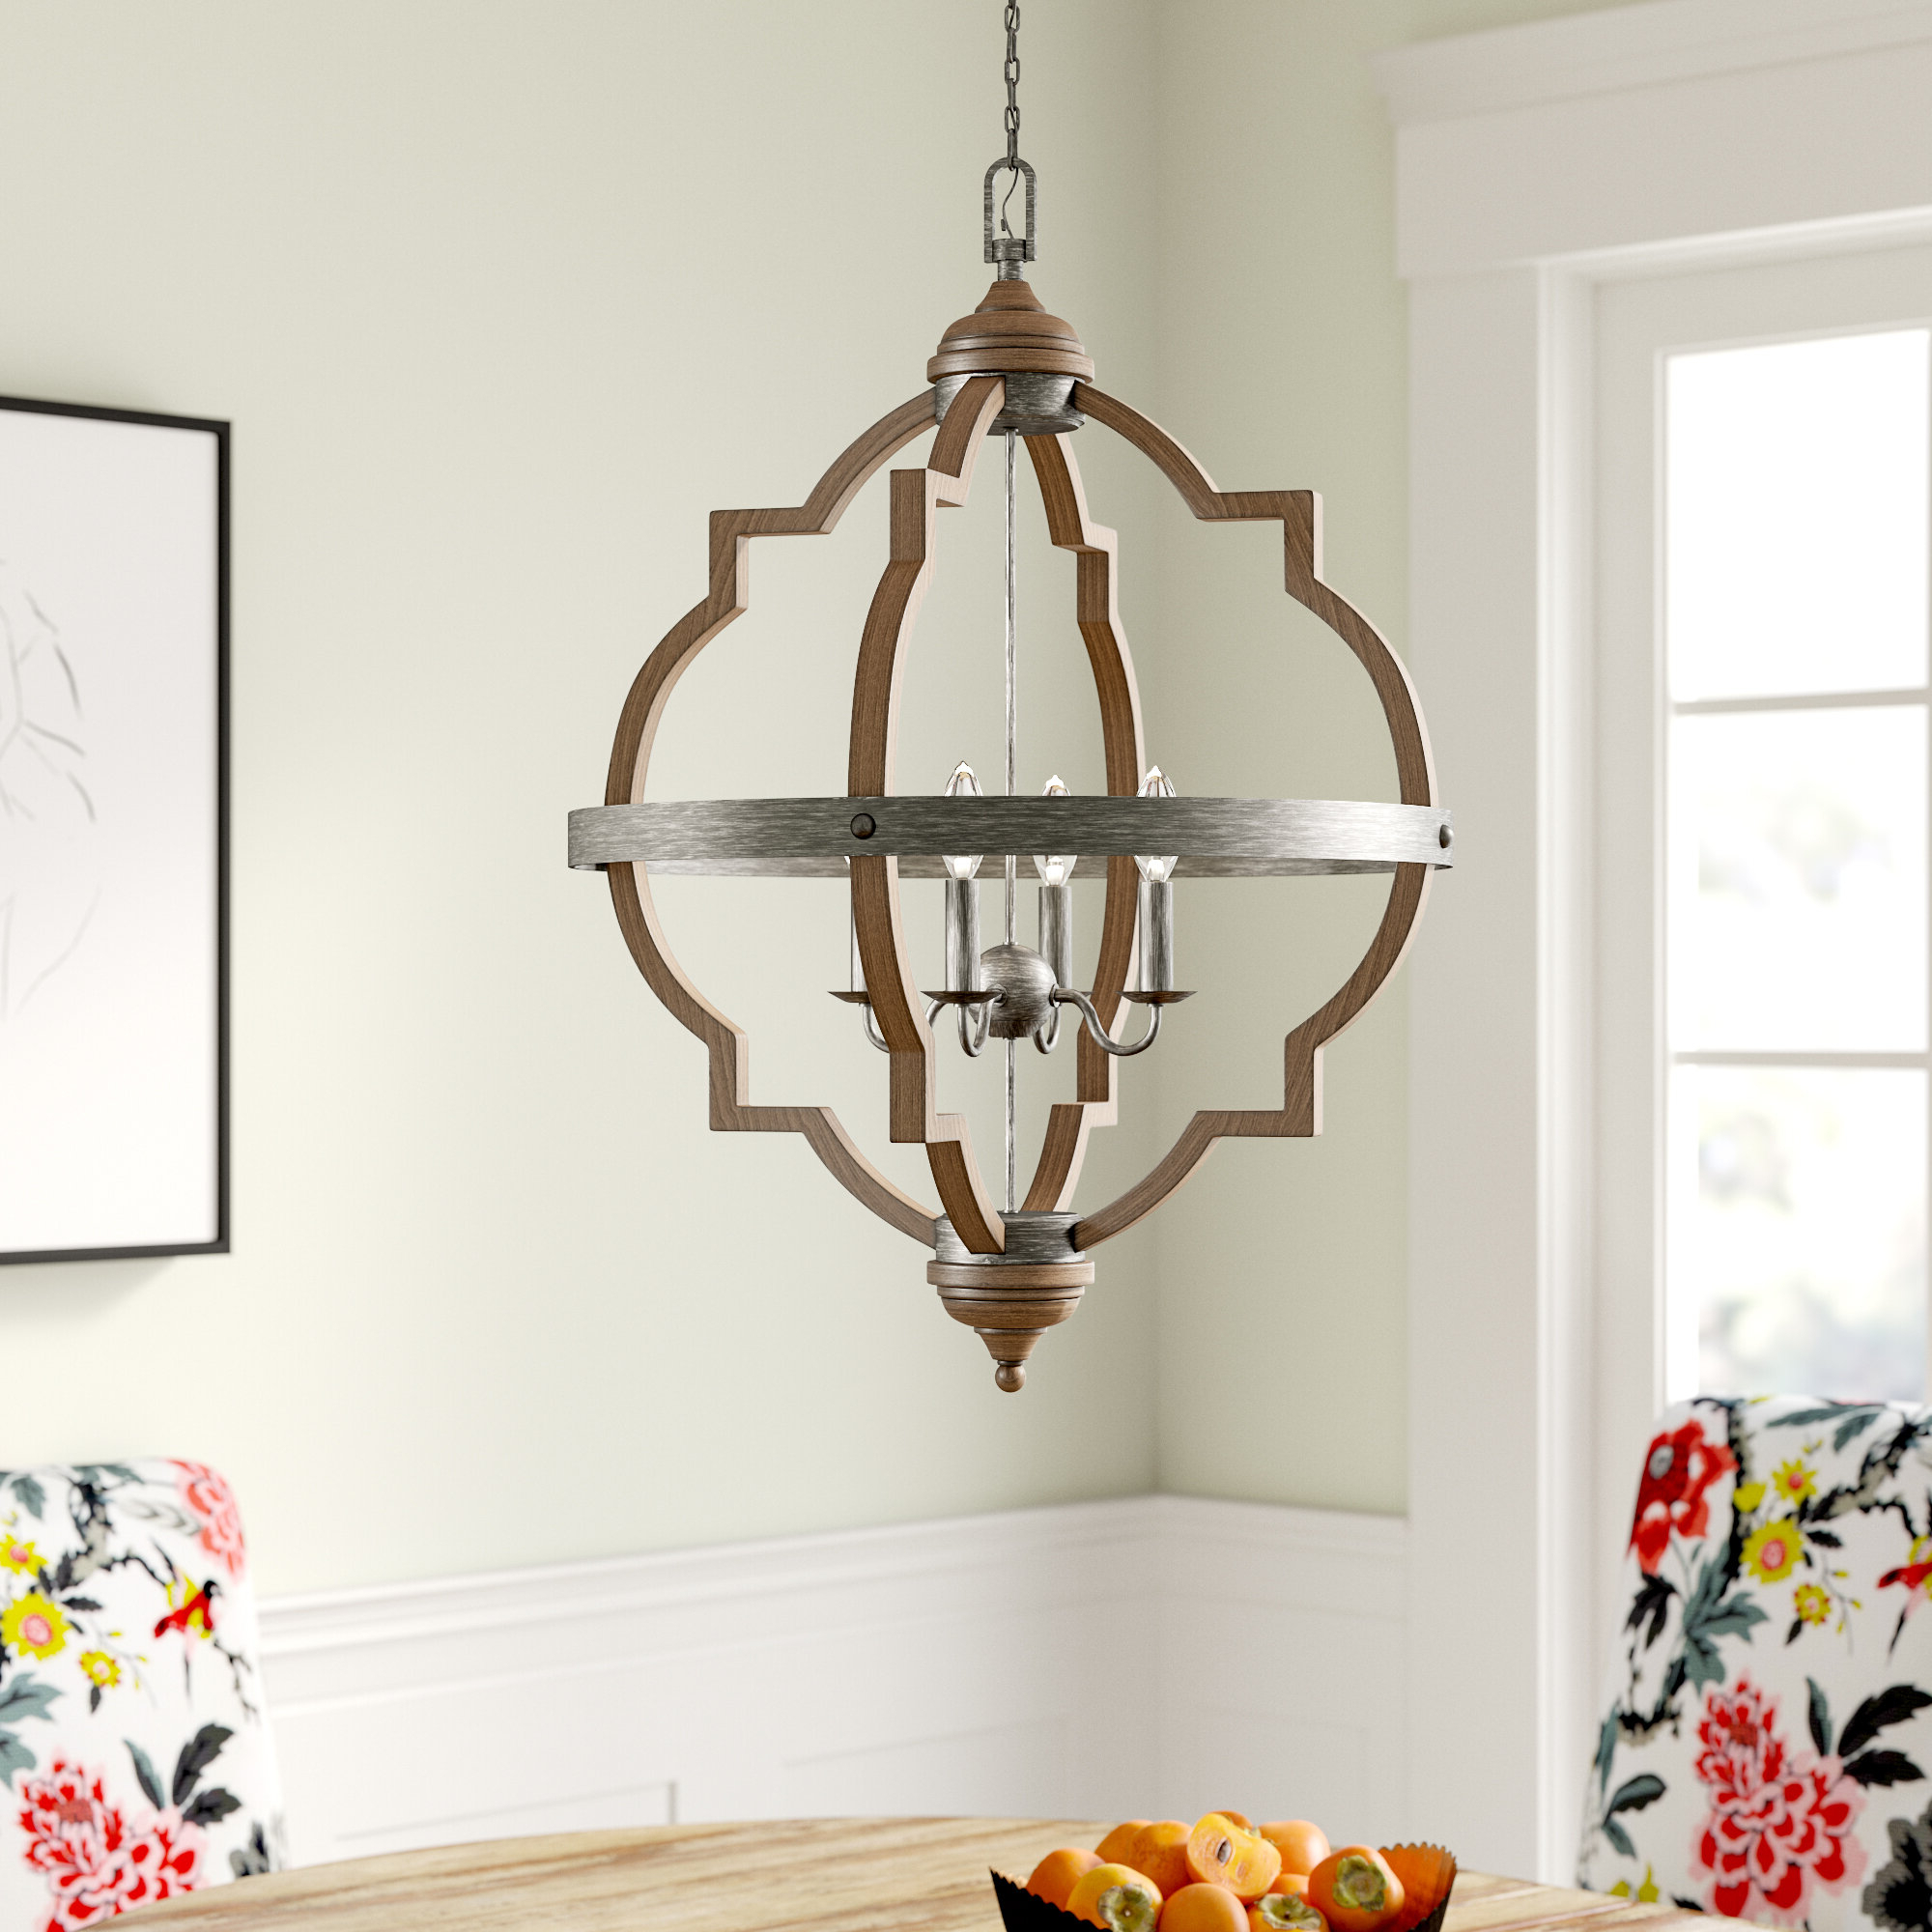 Emaria 4-Light Unique / Statement Chandeliers intended for Famous Bennington 4-Light Candle Style Chandelier